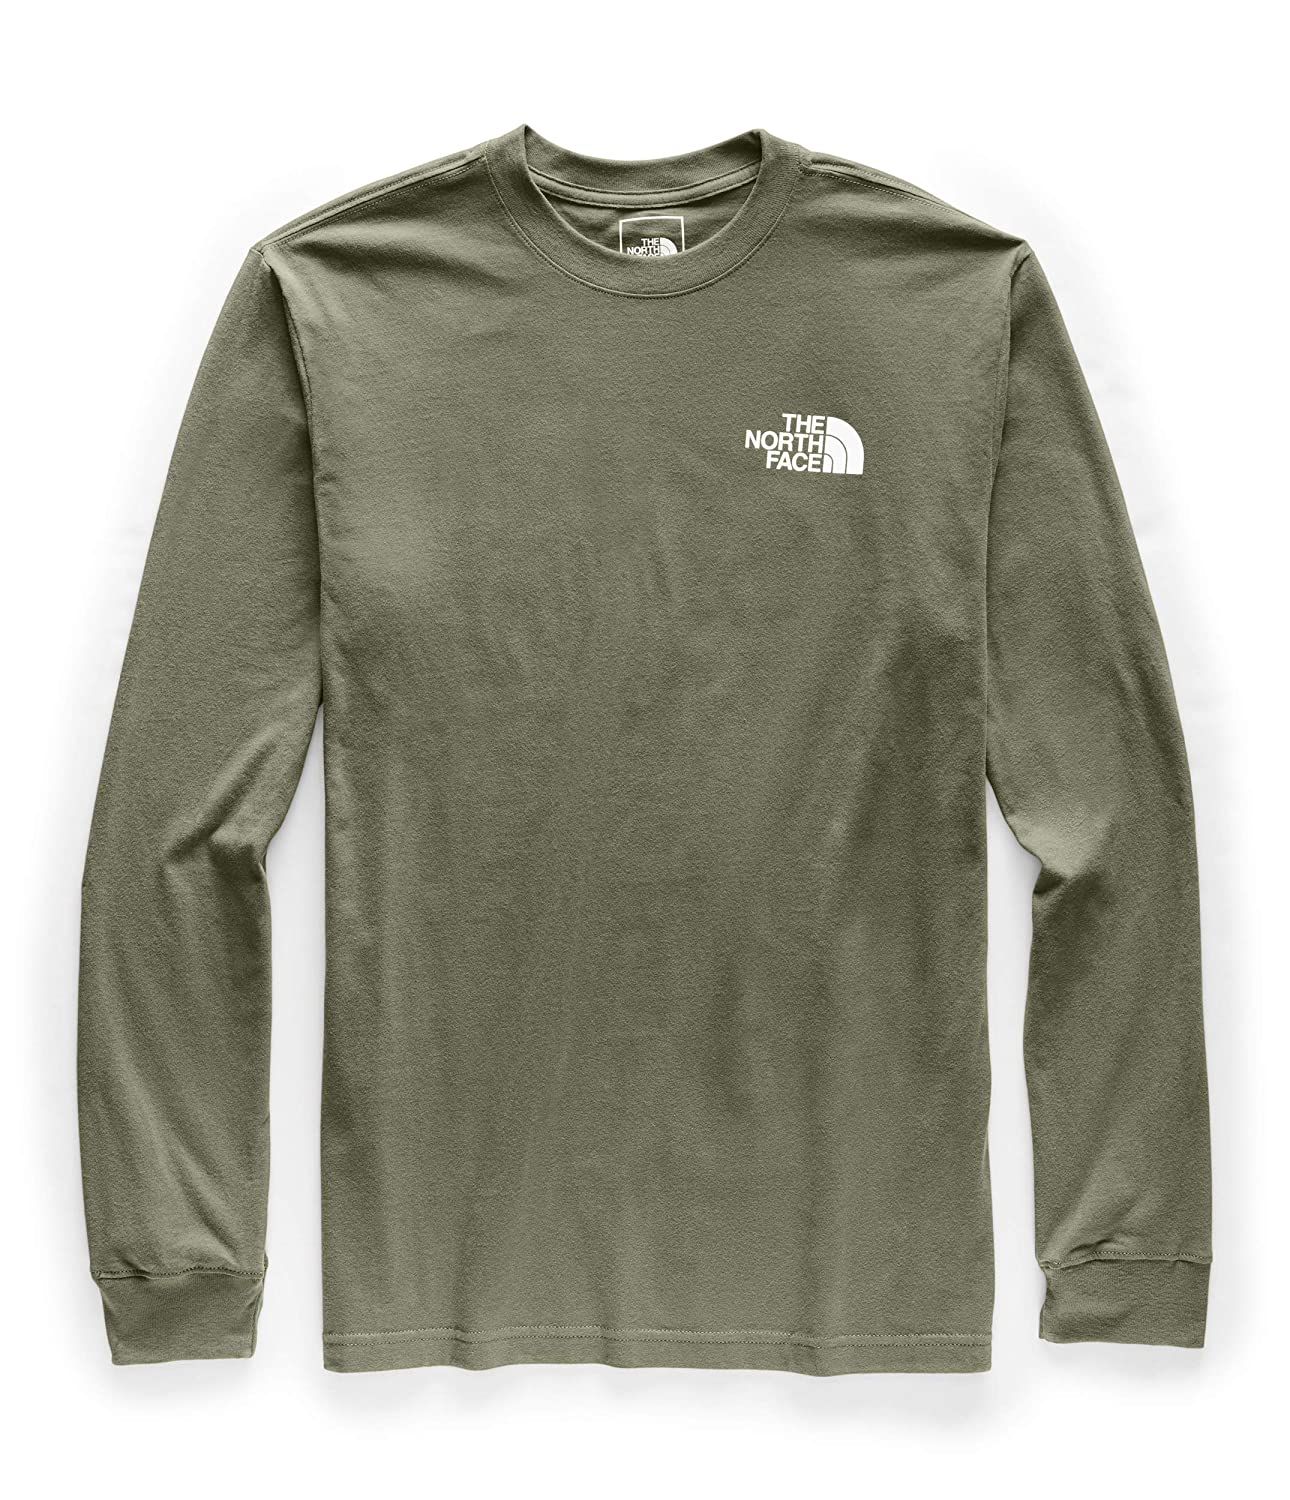 089a7d730 The North Face Men's Long Sleeve Red Box Tee